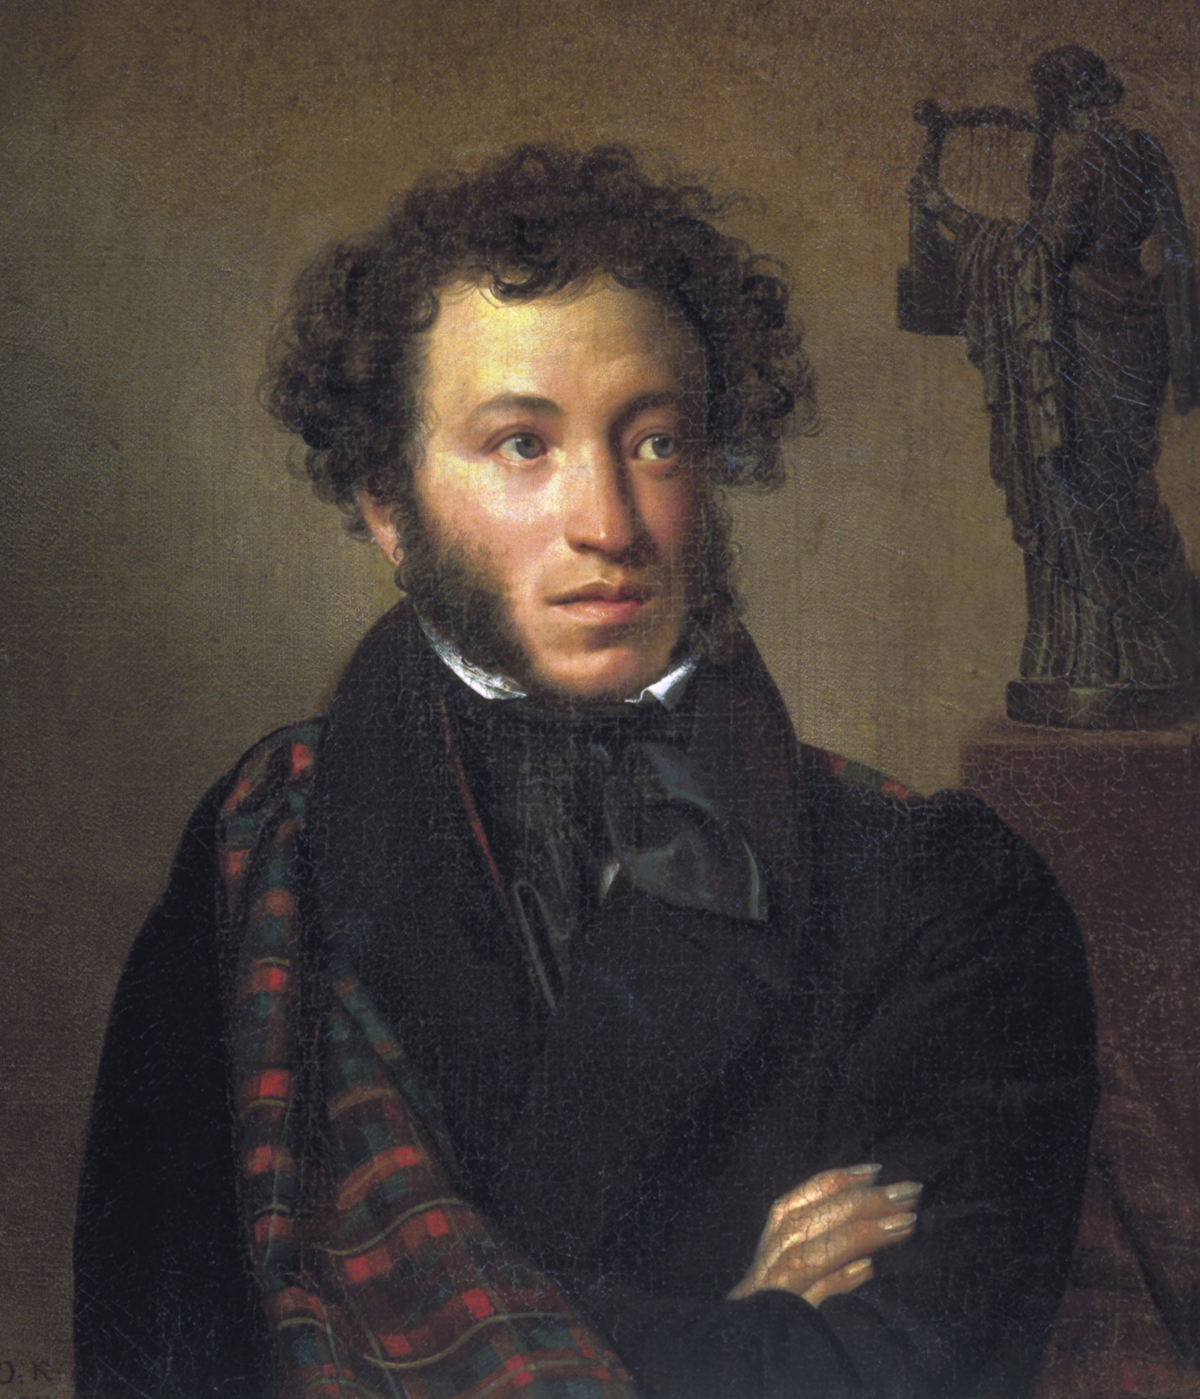 What kind of man is Pushkin